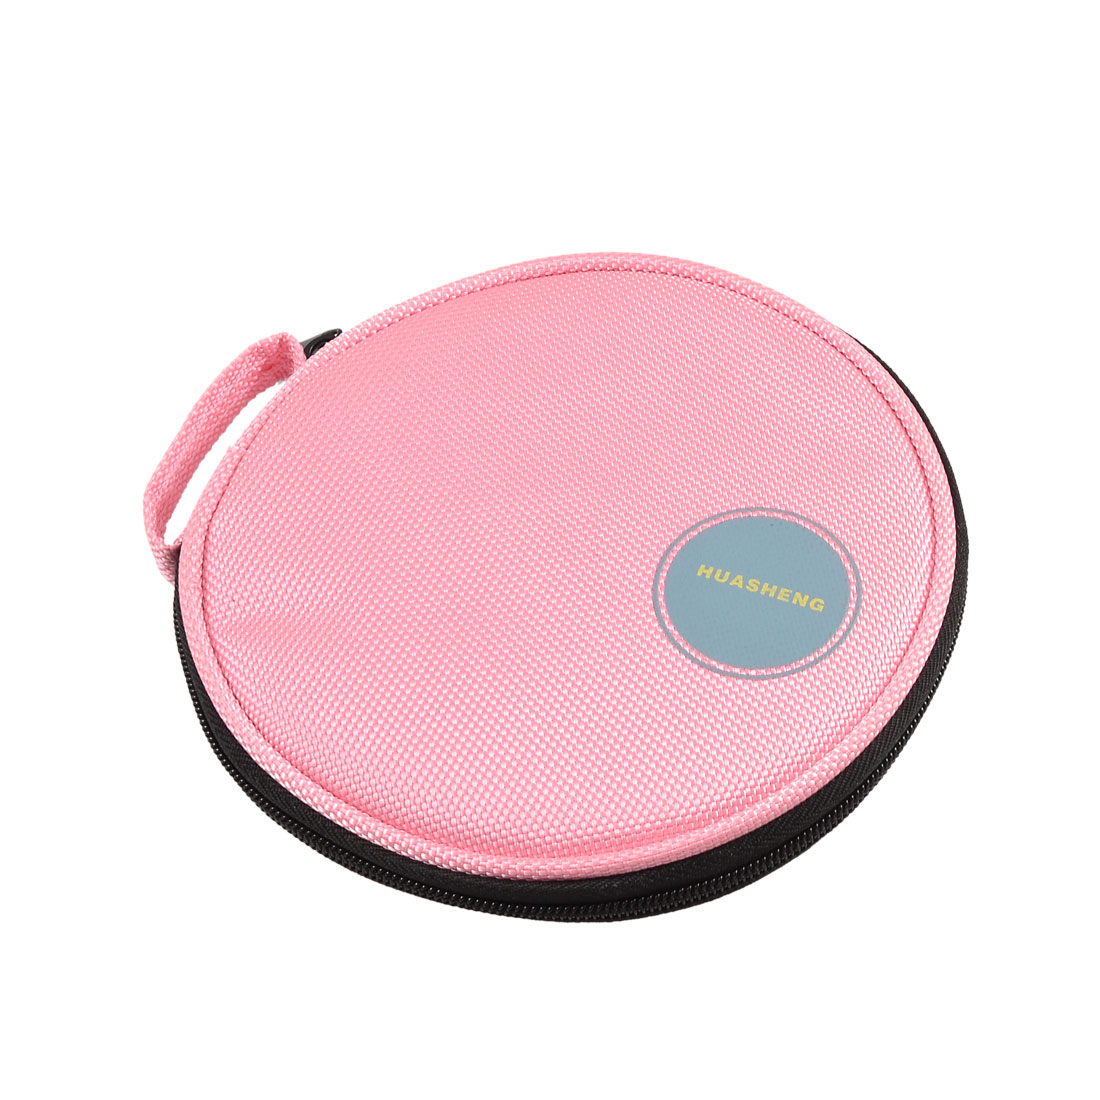 Hand Carrying DVD CD Discs Holder Pocket Bag Organizer Pink